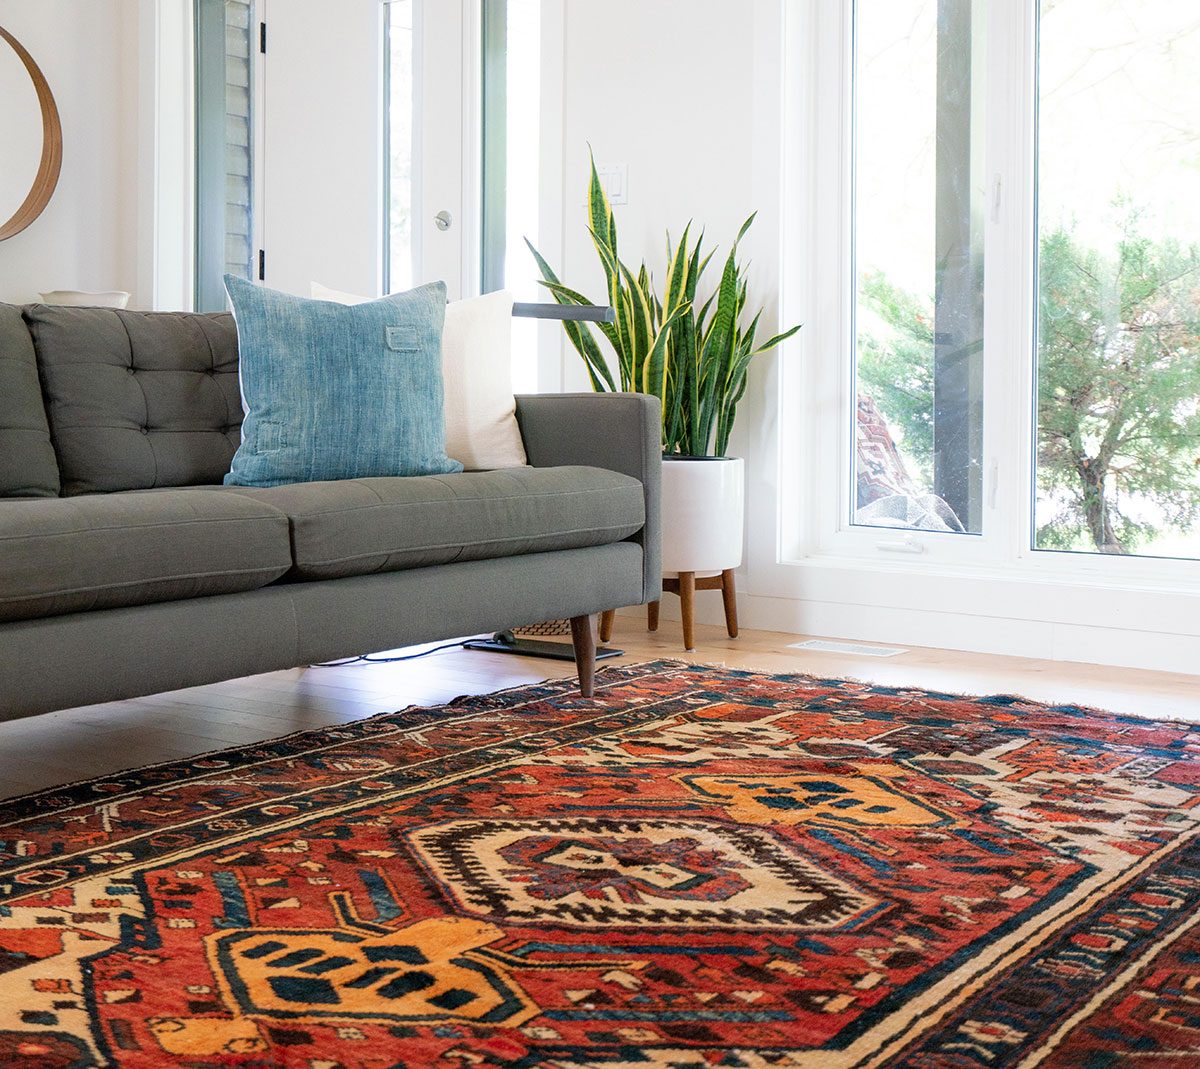 Large size carpet in the living room